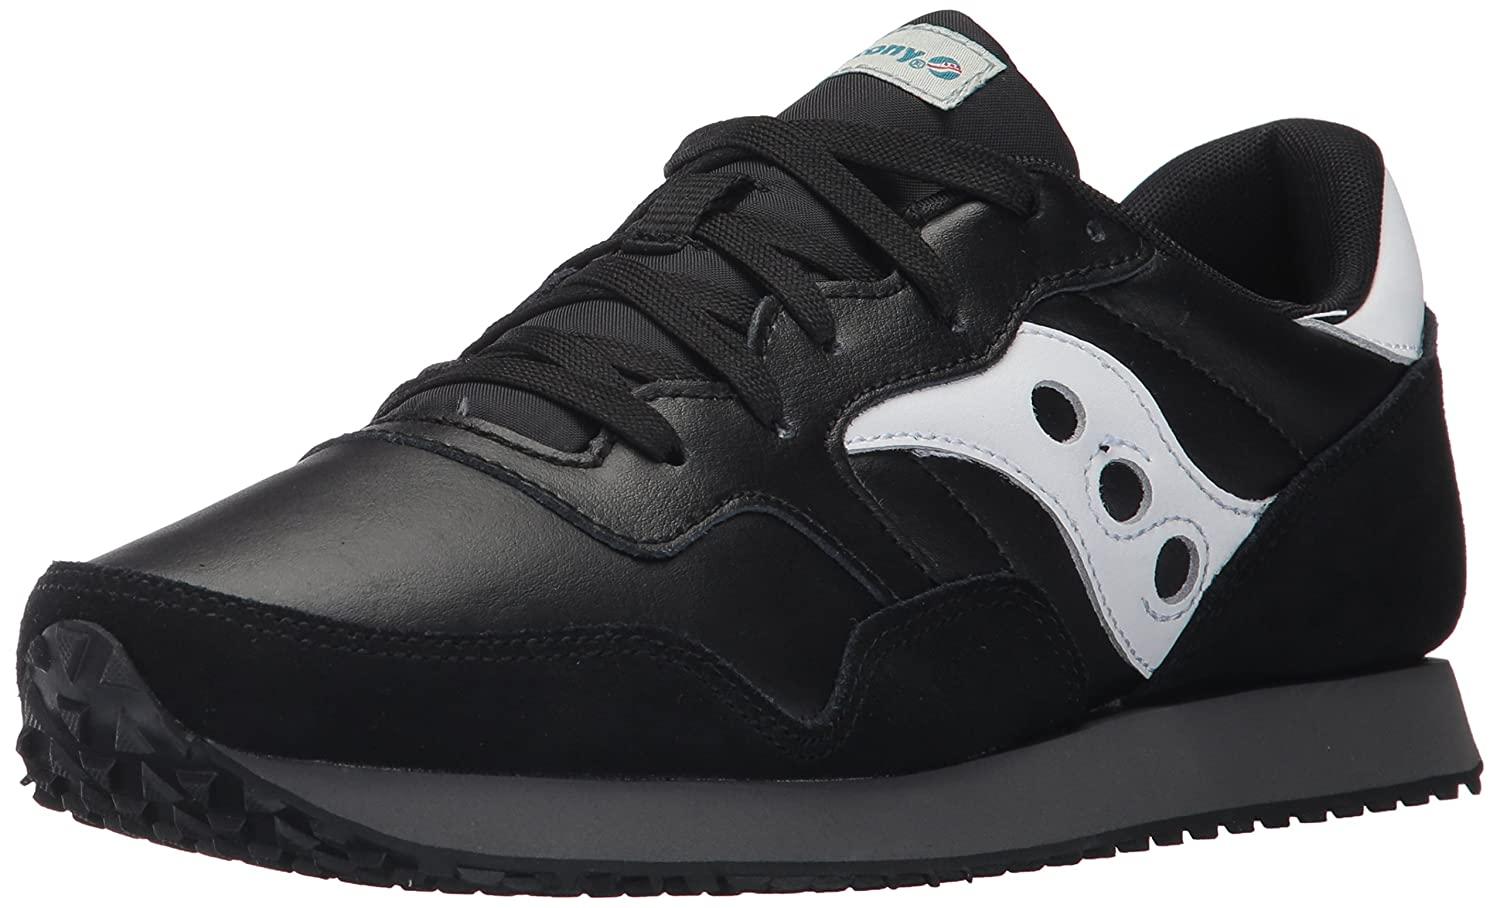 Saucony メンズ DXN Trainer CL Essential B01MZ2FG0W 14 D(M) US|ブラック/ホワイト ブラック/ホワイト 14 D(M) US